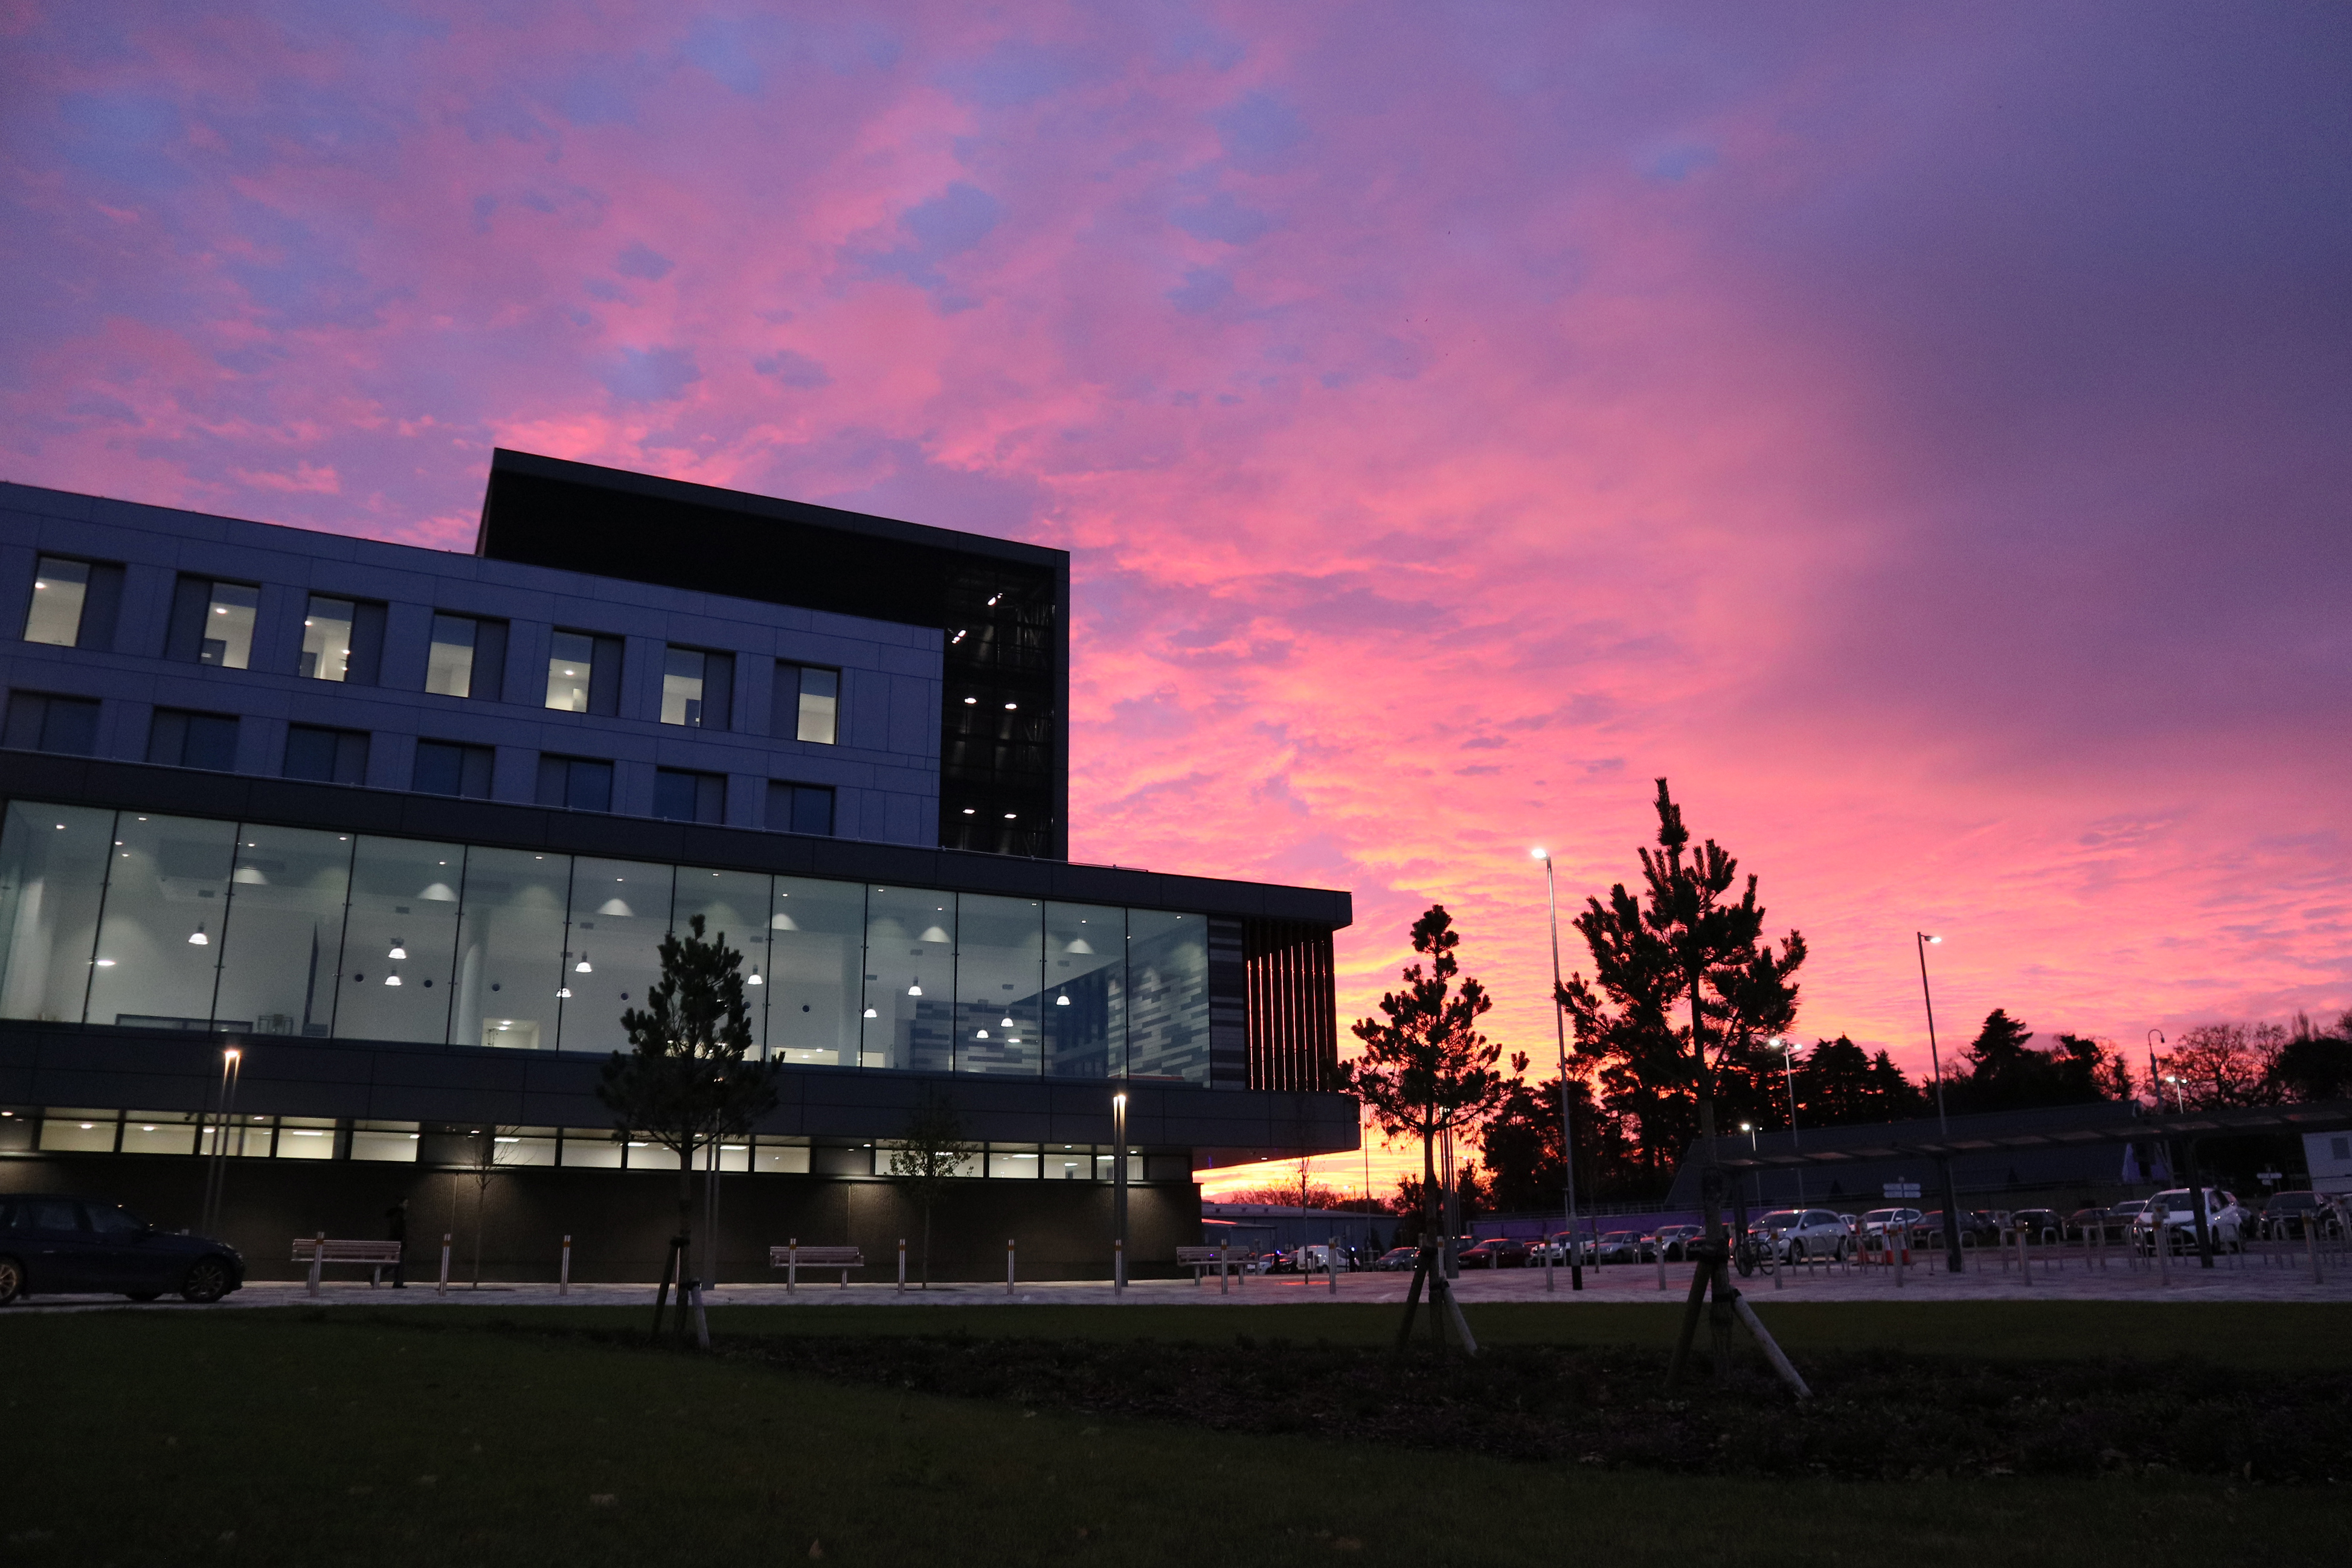 CWMBRAN, WALES - NOVEMBER 16: A general view of the early morning start at the Grange University Hospital, where the photographer works transporting non-emergency patients, on November 13, 2020 in Cwmbran, Wales. The £350m hospital will provide services including accident and emergency, intensive care and major surgery to patients living across Gwent and south Powys in South Wales. It has opened 4 months ahead of schedule, as the NHS faces a second wave of coronavirus cases. (Photo by Huw Fairclough/Getty Images)